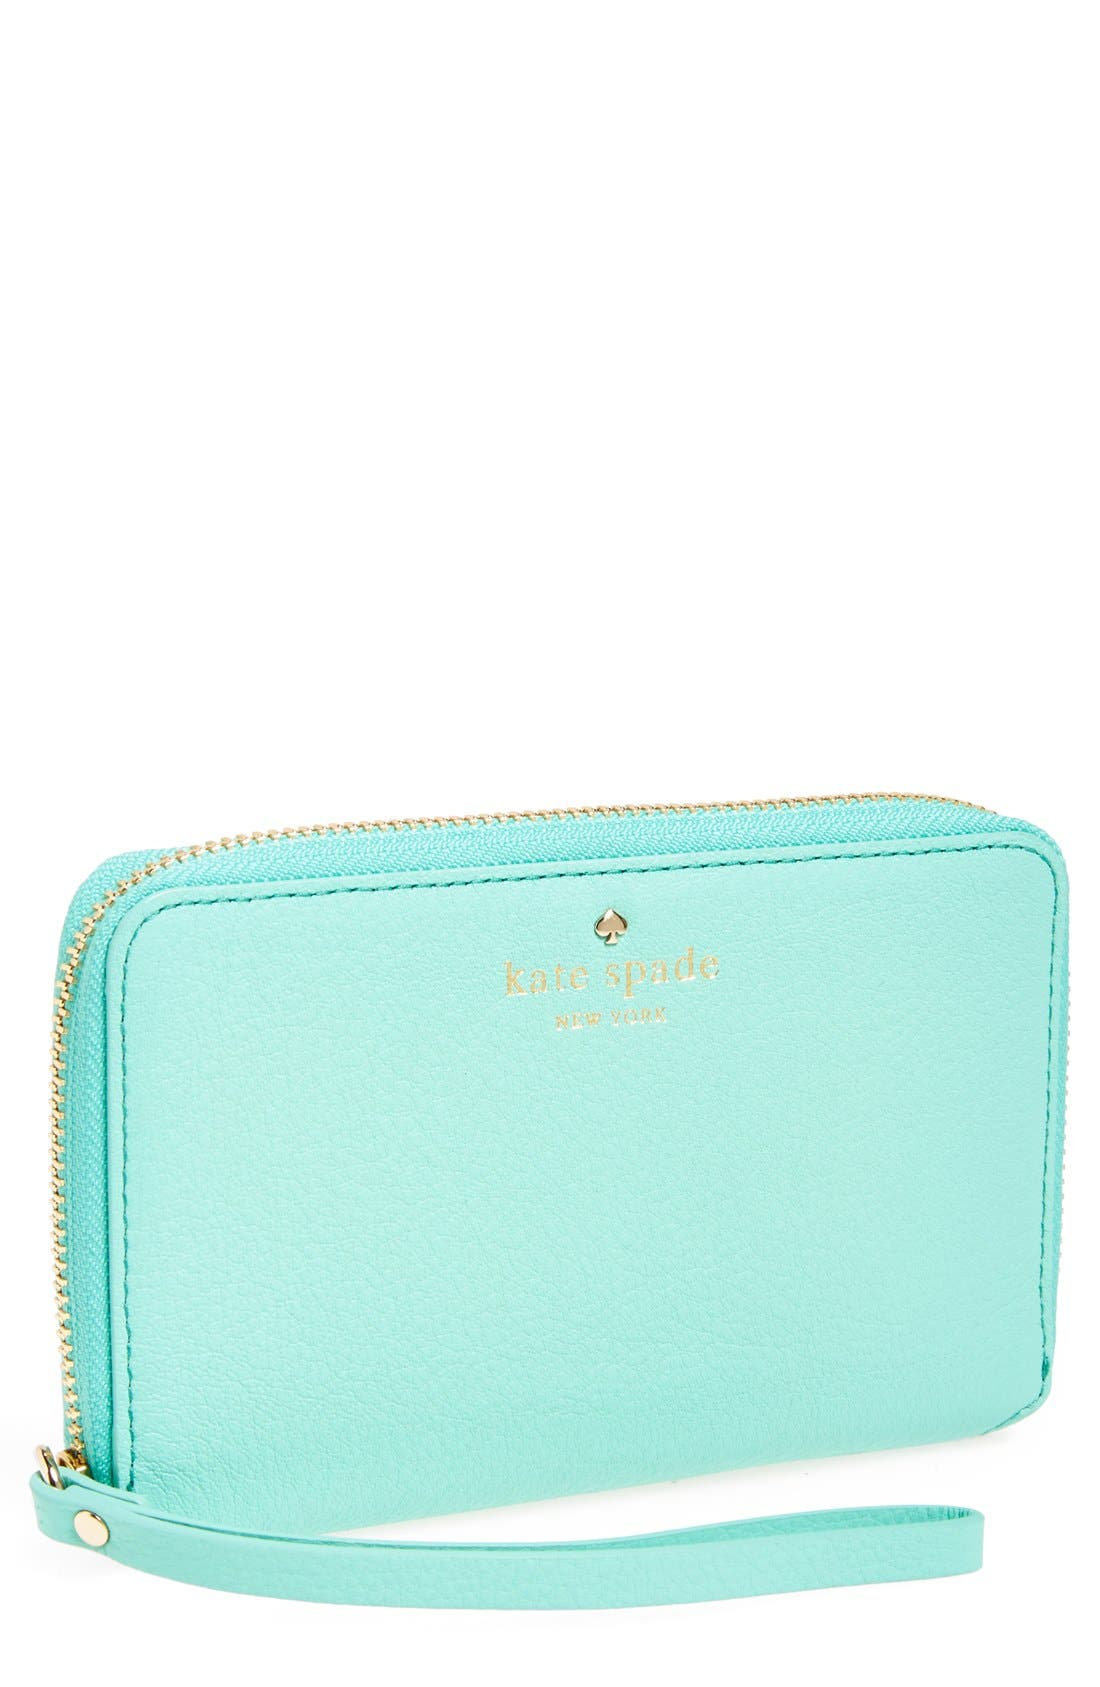 Alternate Image 1 Selected - kate spade new york 'cobble hill - laurie' wallet